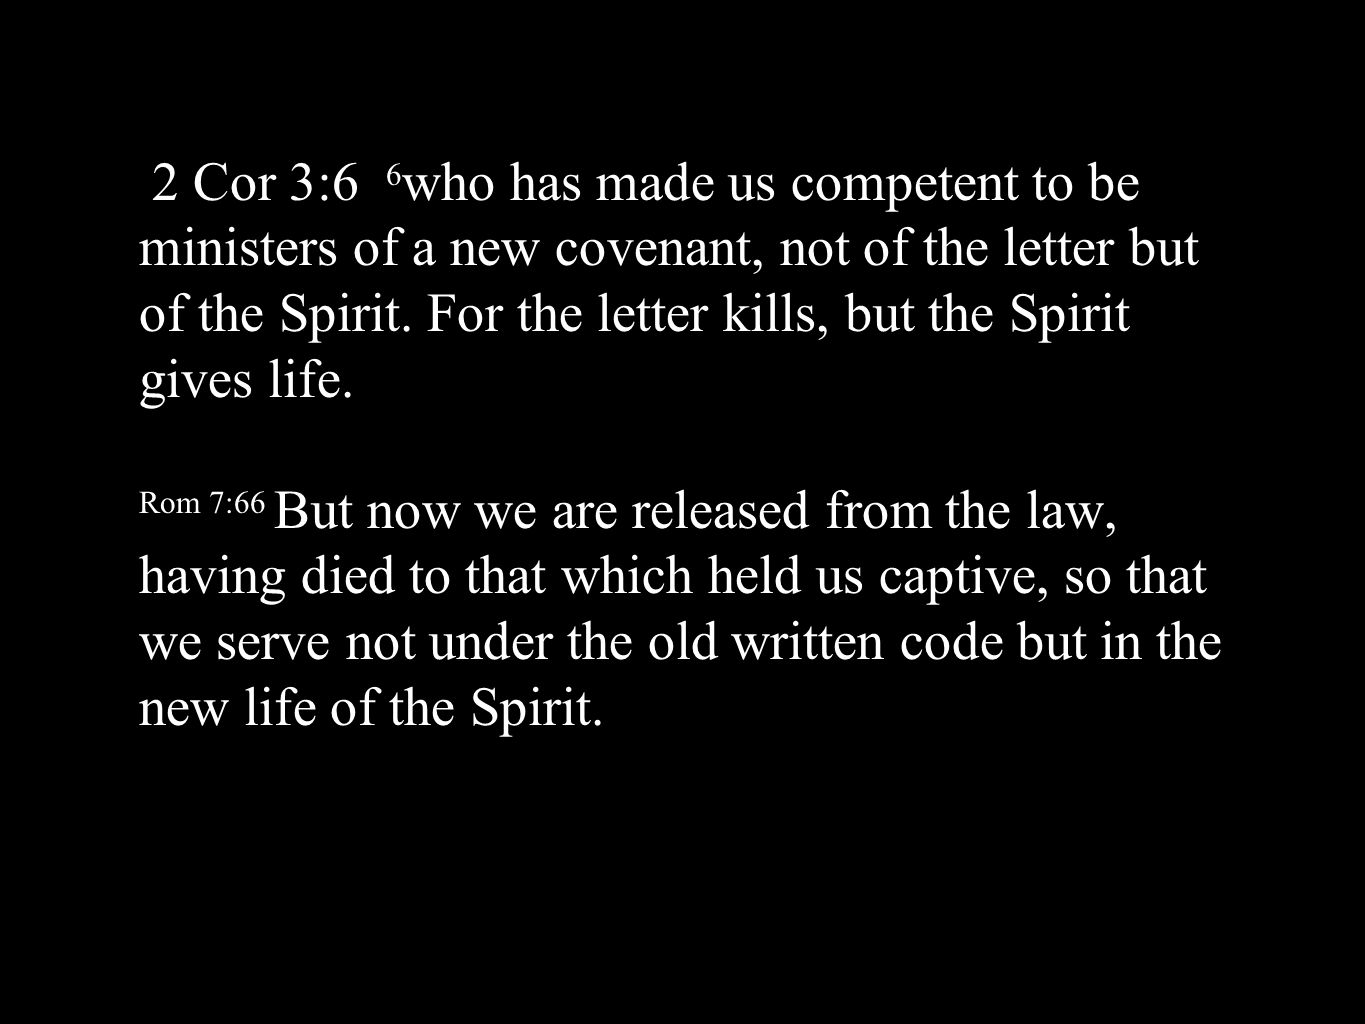 2 Cor 3:6 6who has made us competent to be ministers of a new covenant, not of the letter but of the Spirit.